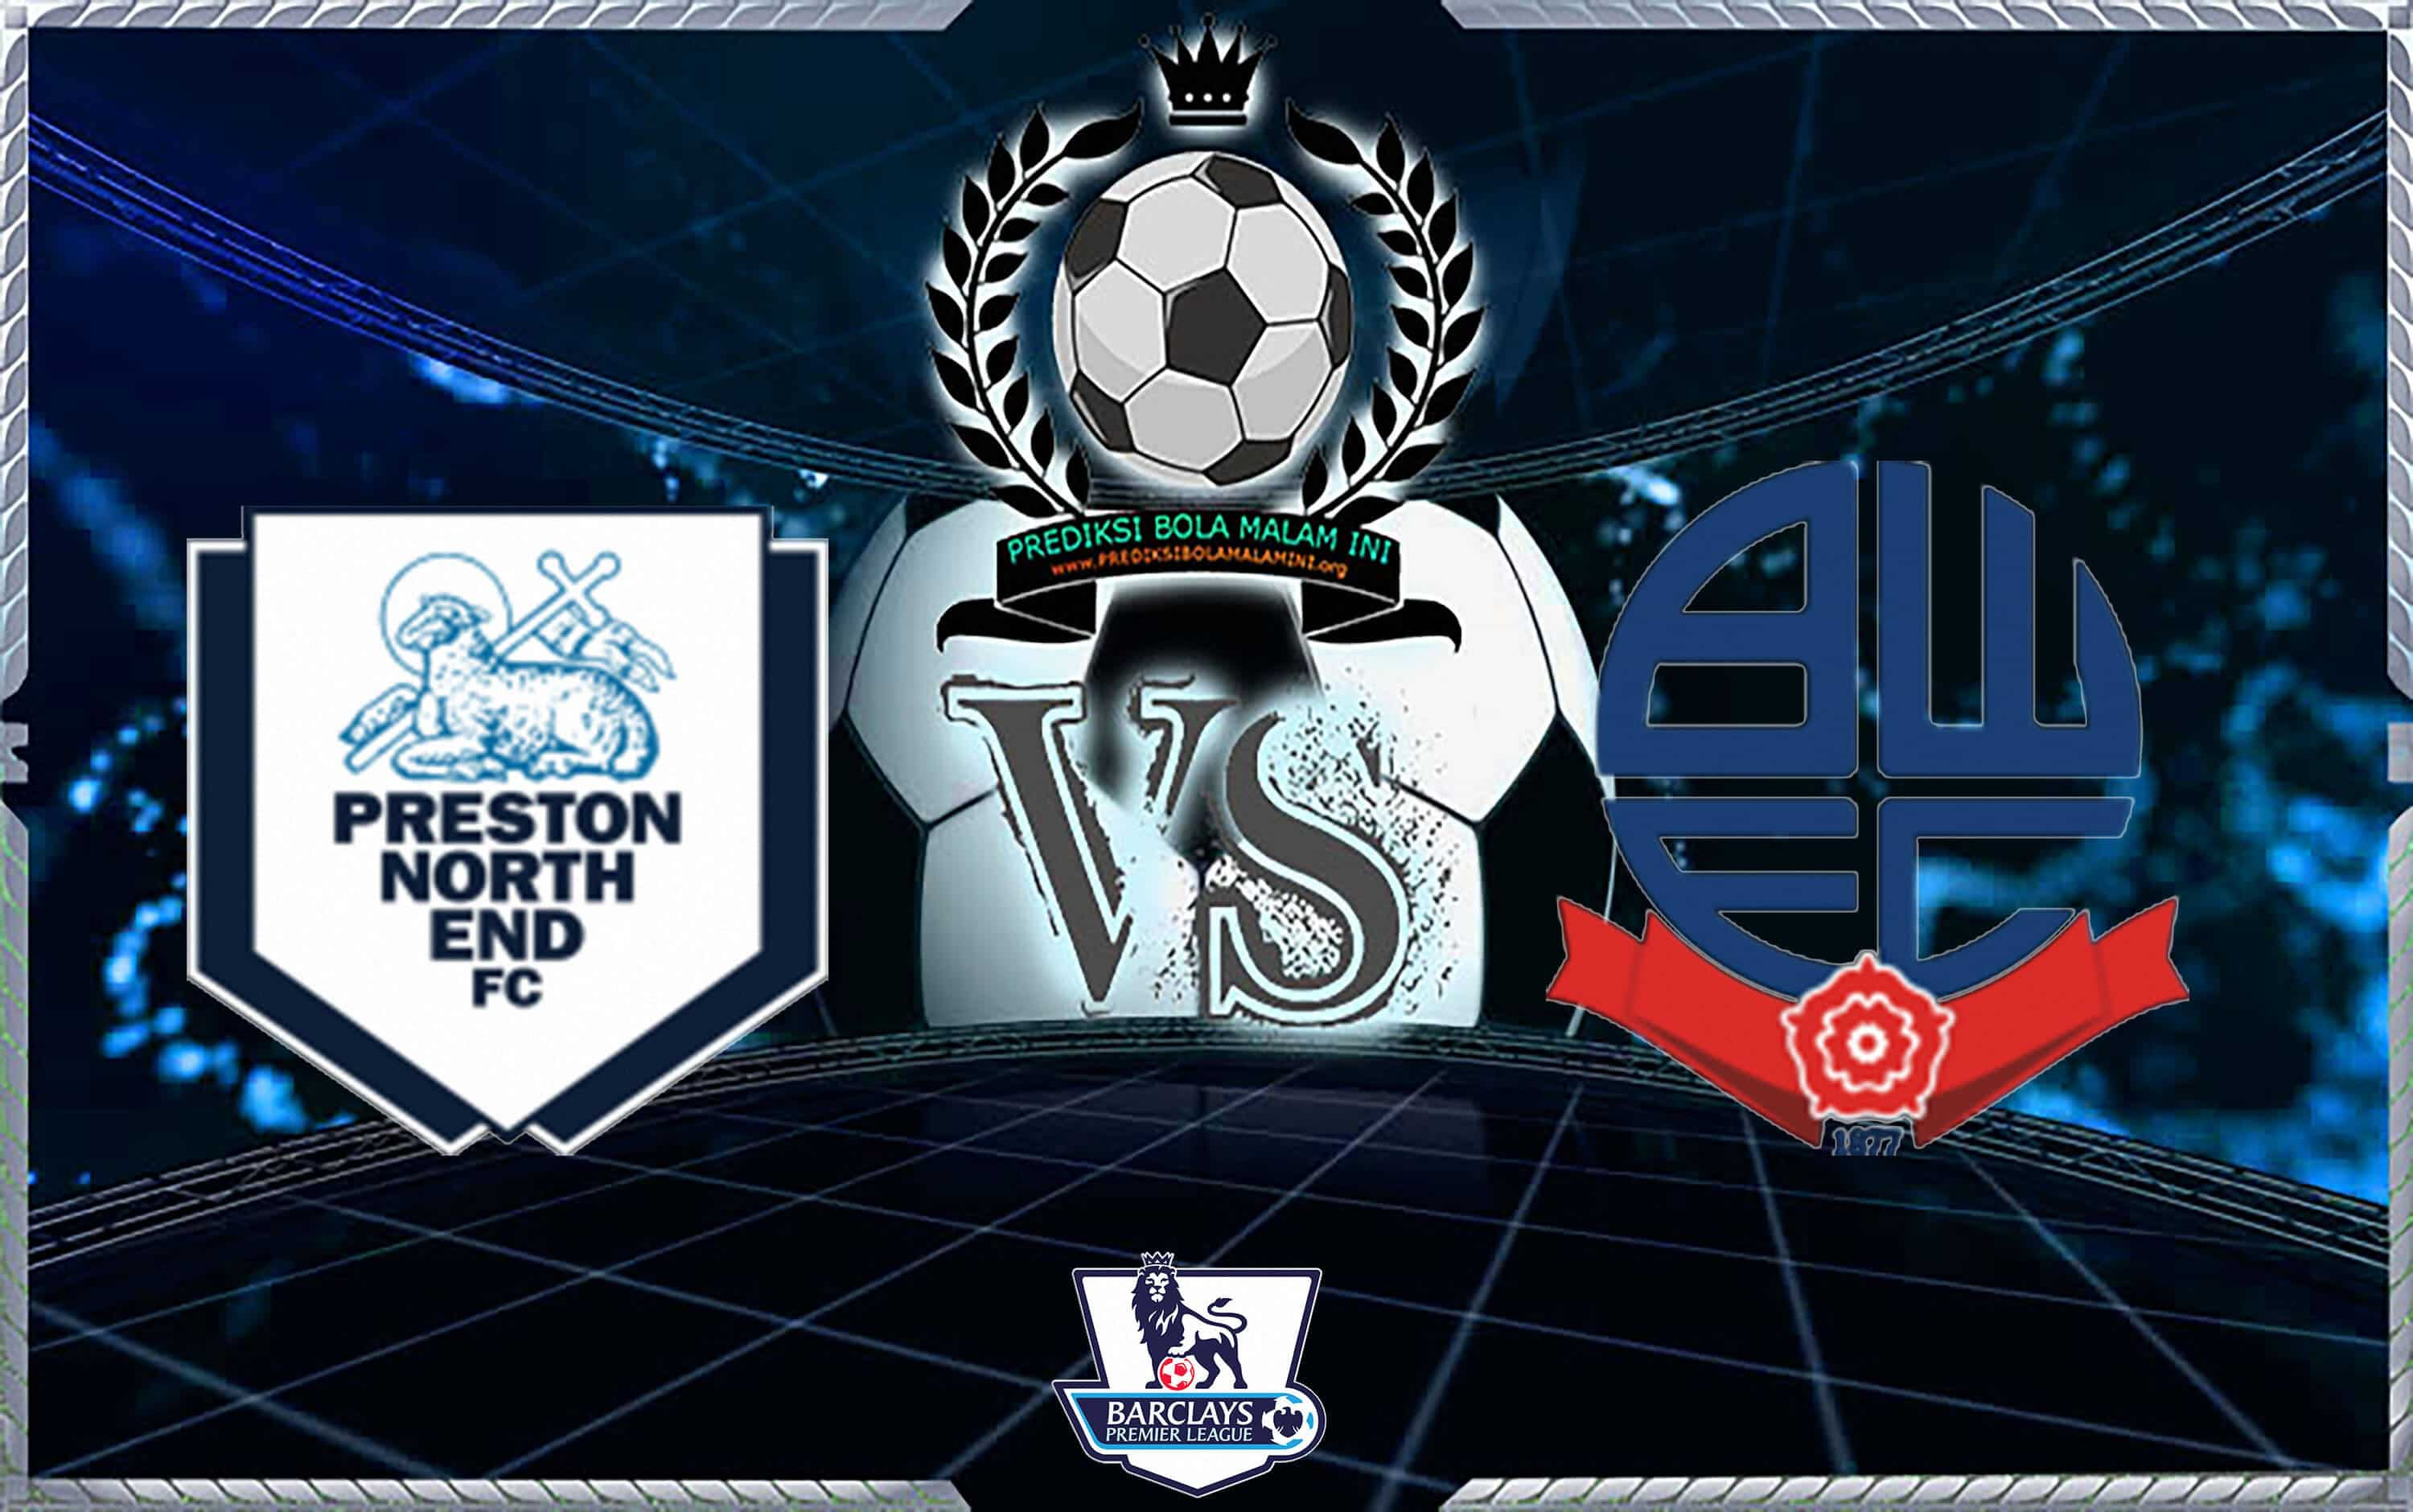 Prediksi Skor PRESTON NORTH END Vs BOLTON WANDERERS 1 September 2018